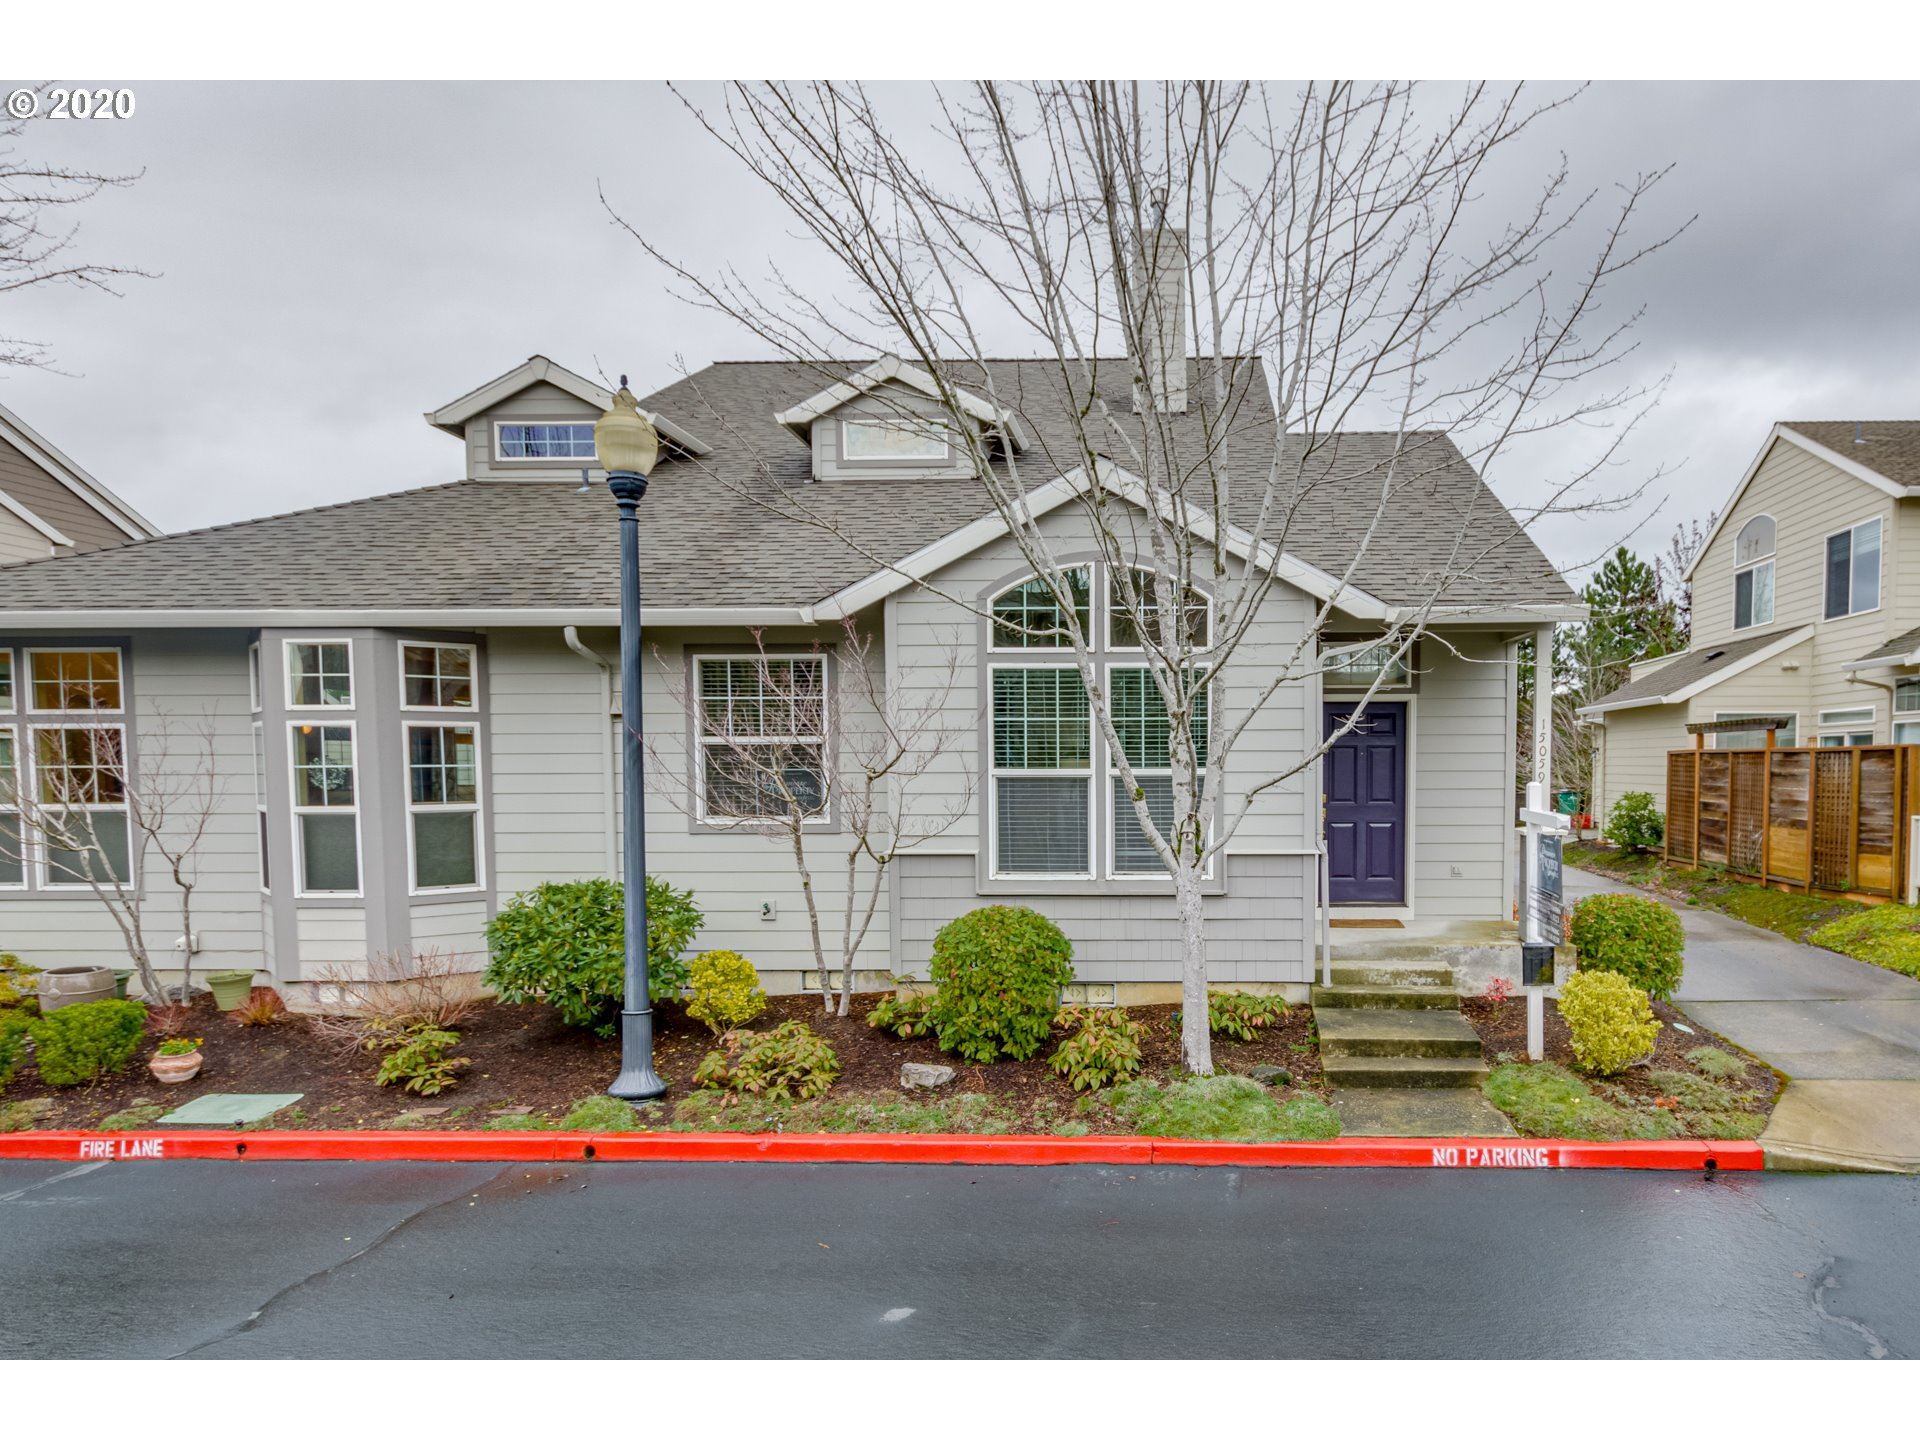 15059 NW ELAINA CT, Portland, OR 97229 - MLS#: 20444713